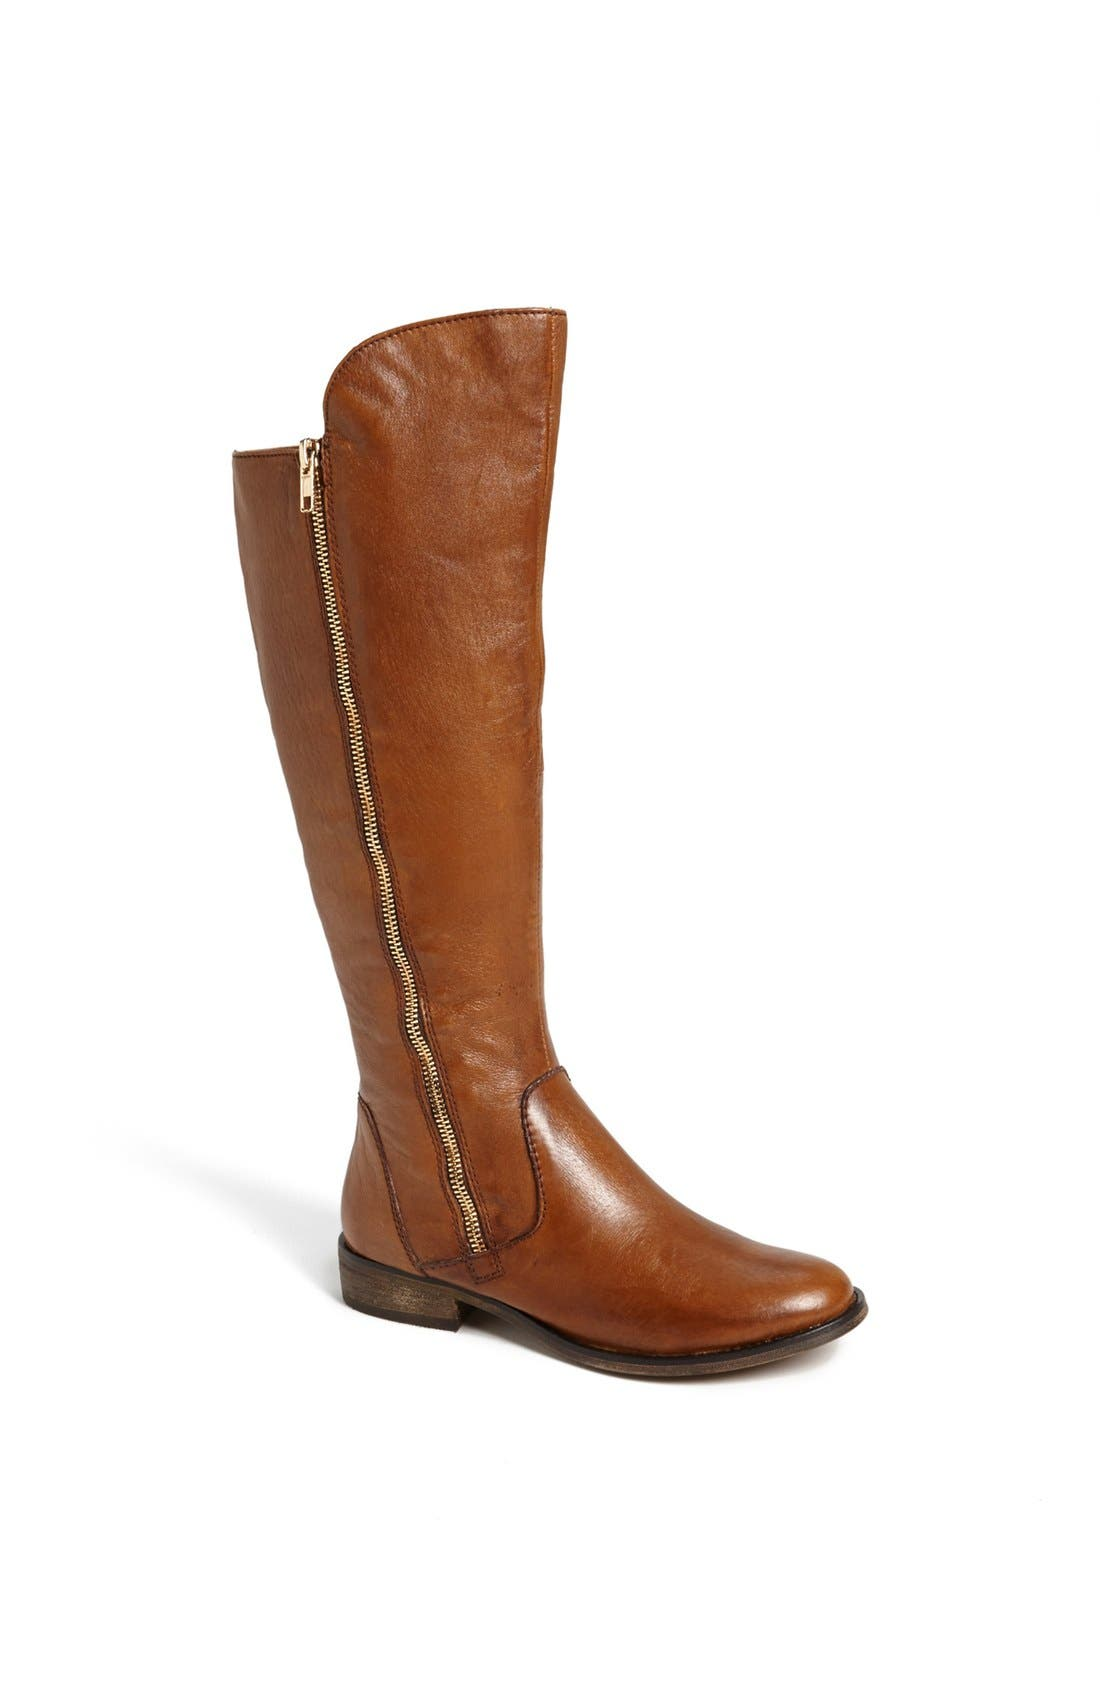 Alternate Image 1 Selected - Steve Madden 'Shawny' Boot